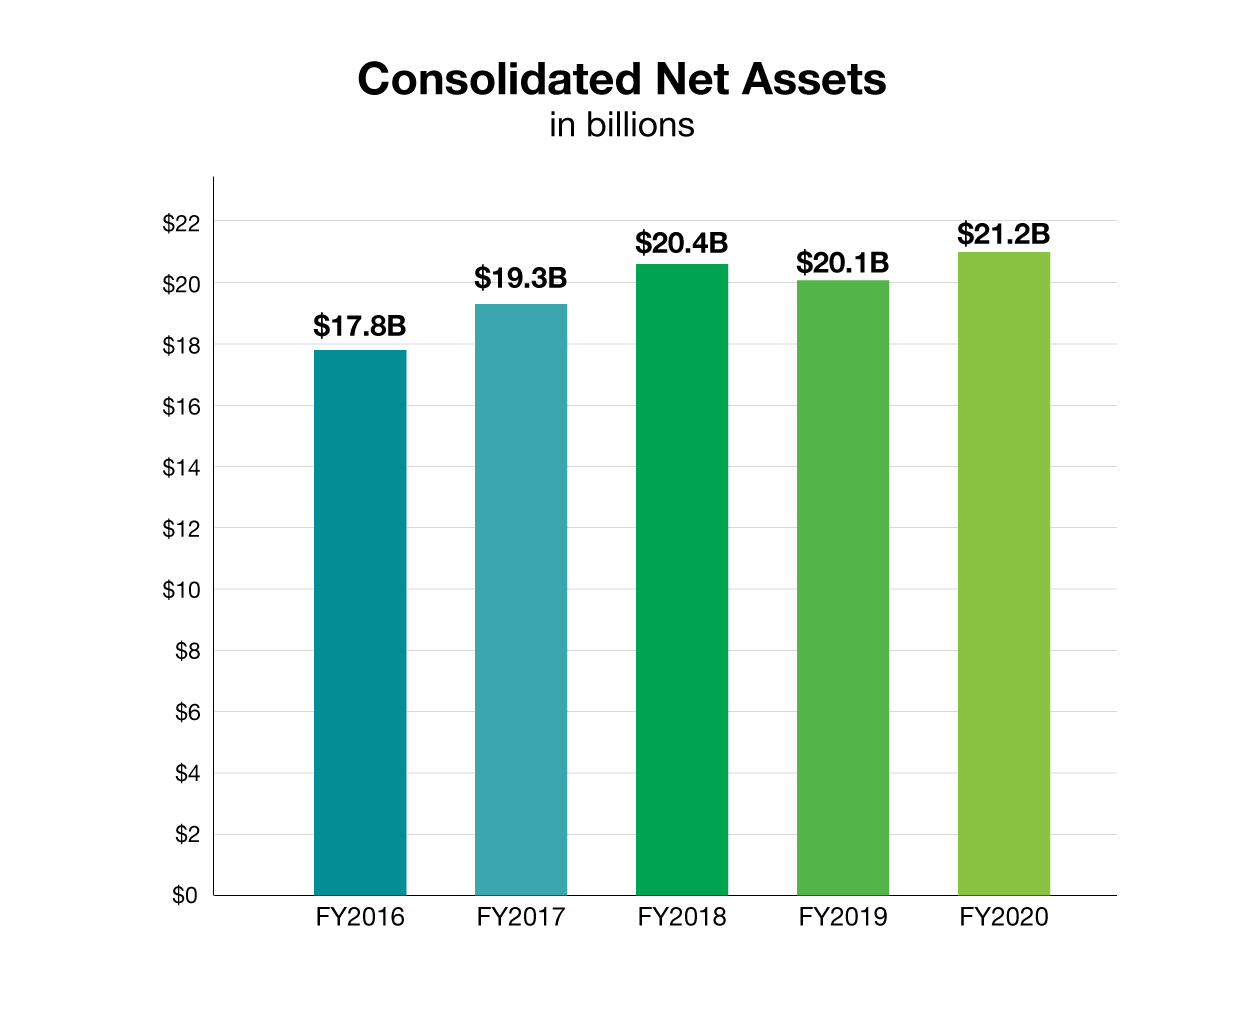 HHMI Consolidated Net Assets, 2020